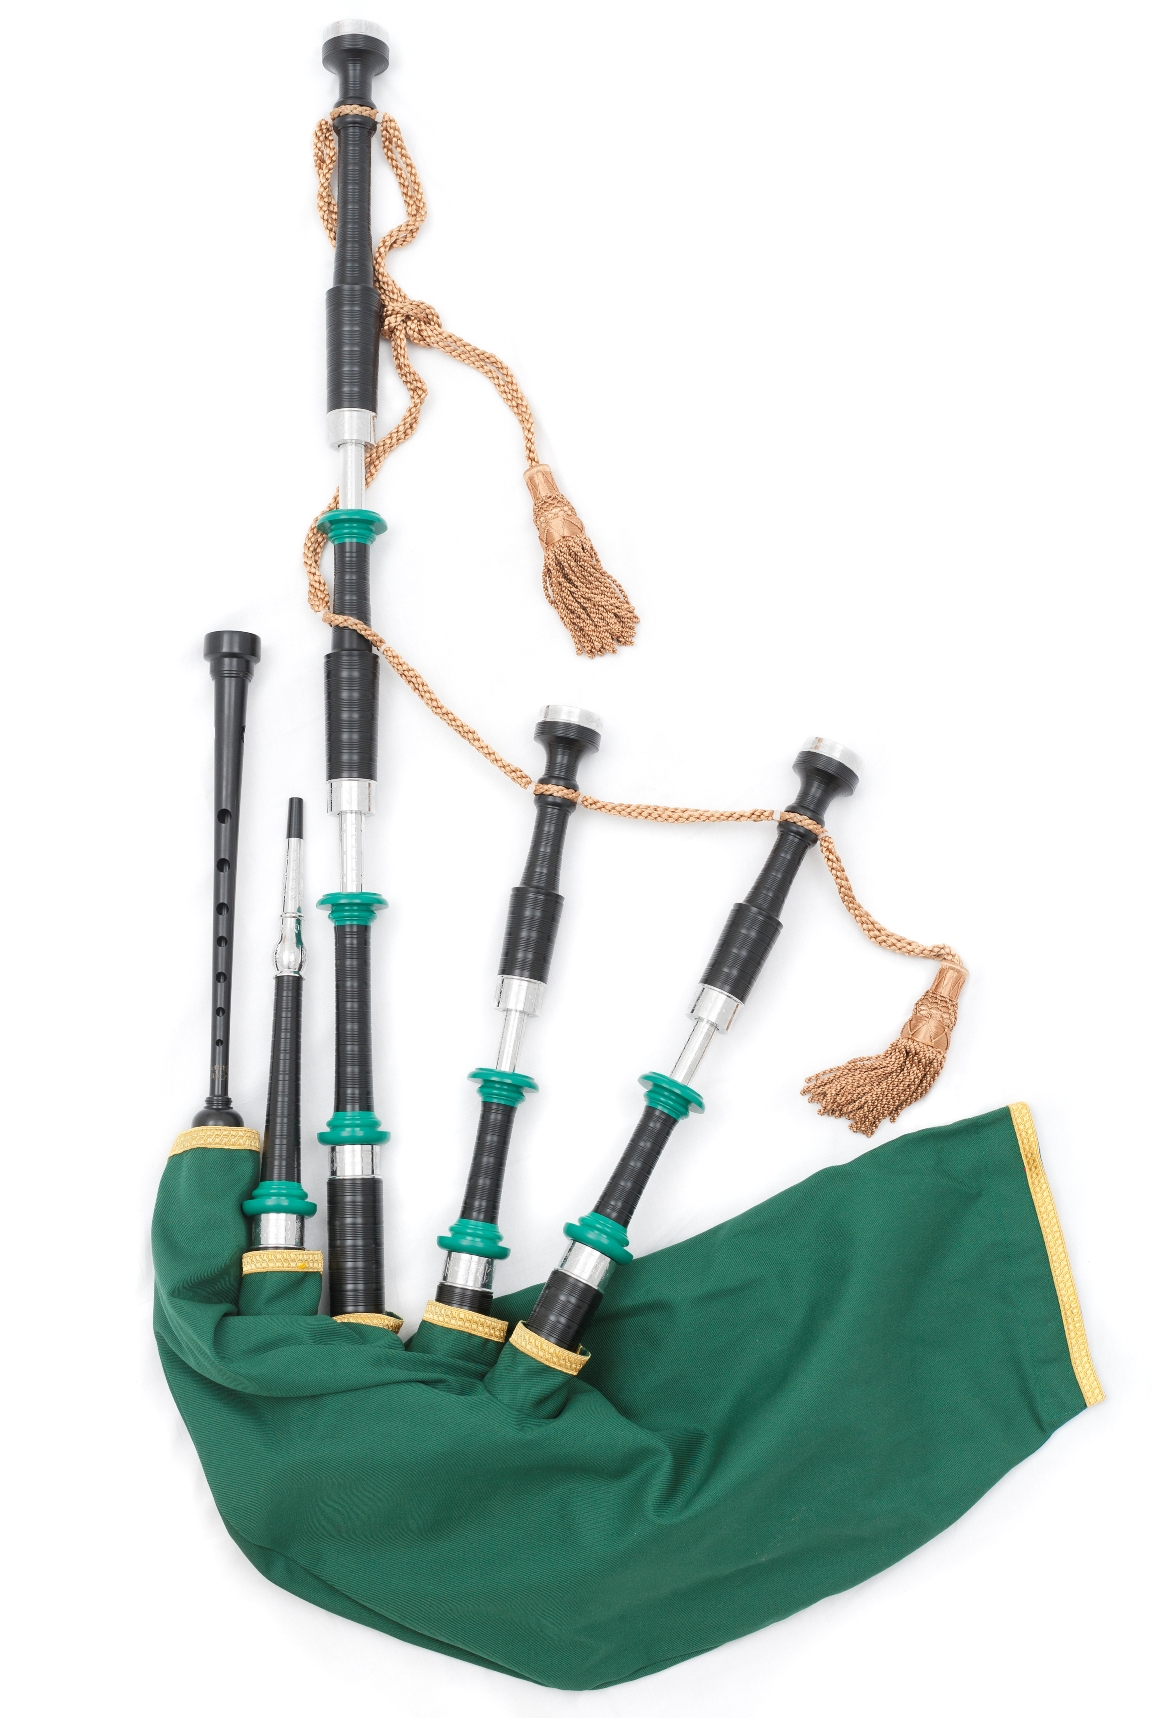 McCallum P4 Themed Acetyl Bagpipes